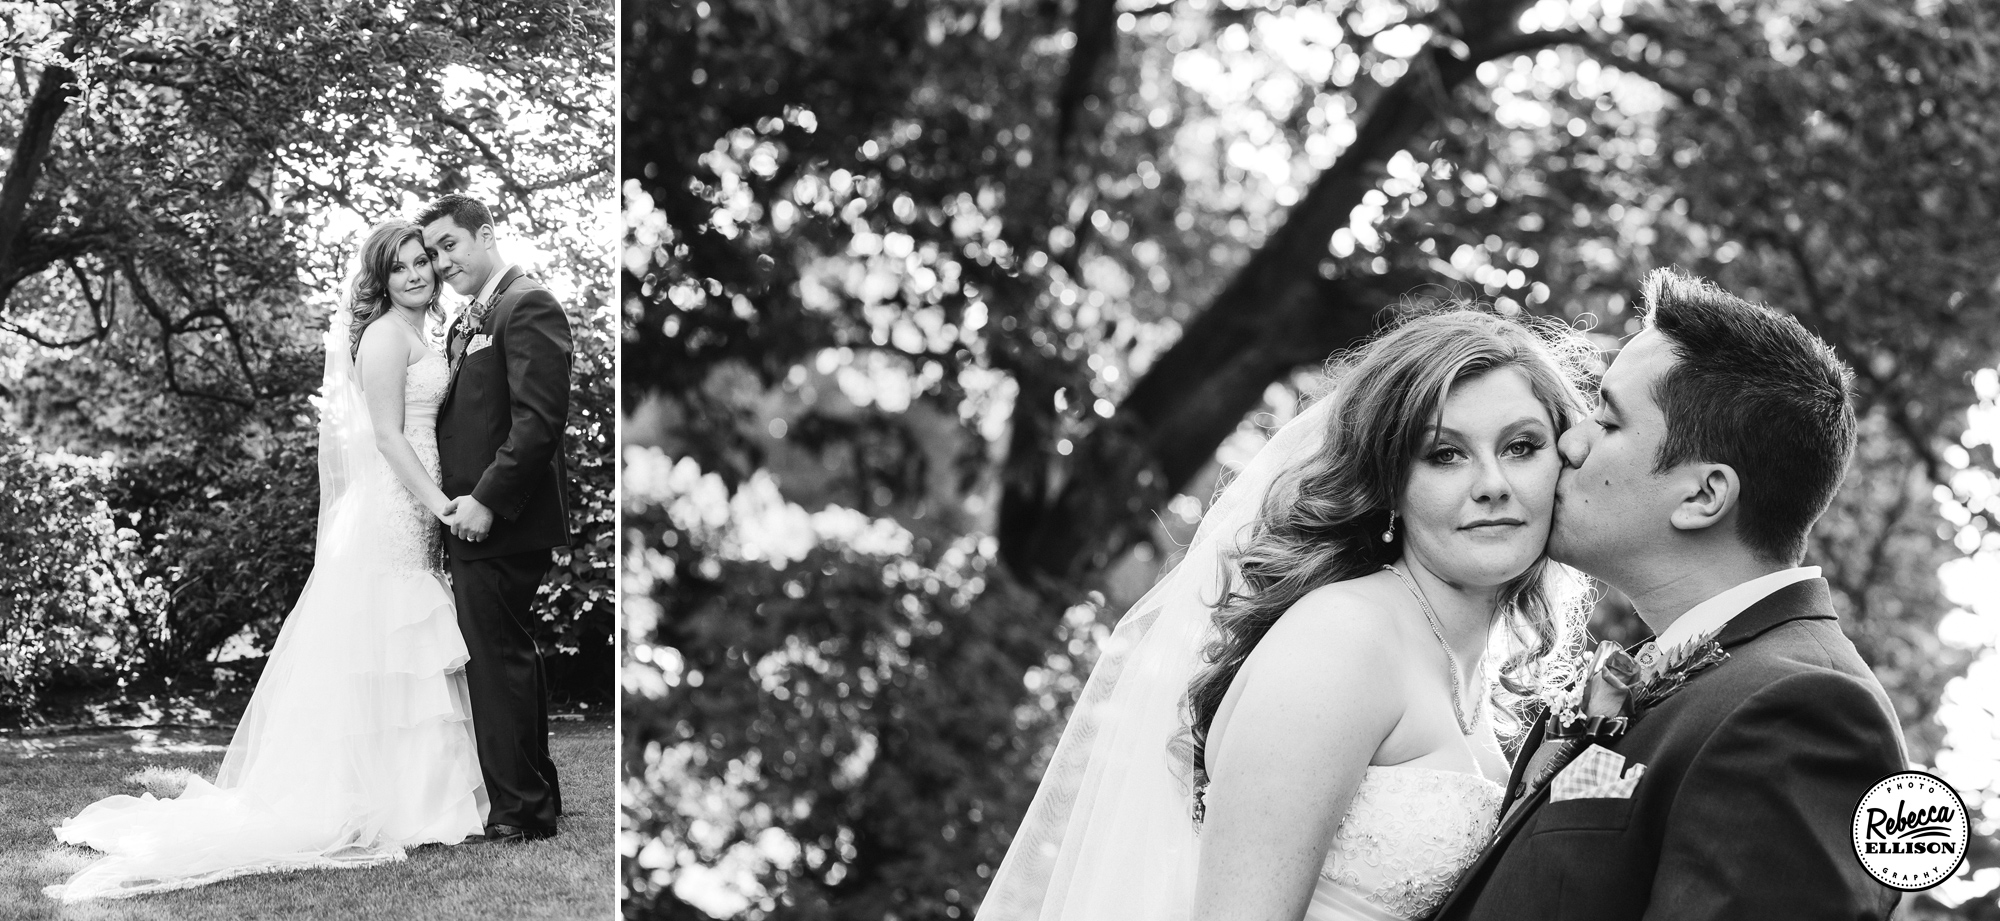 Outdoor Black and white wedding portraits of a bride and groom featuring a white tulip wedding dress photographed by Seattle wedding photographer Rebecca Ellison